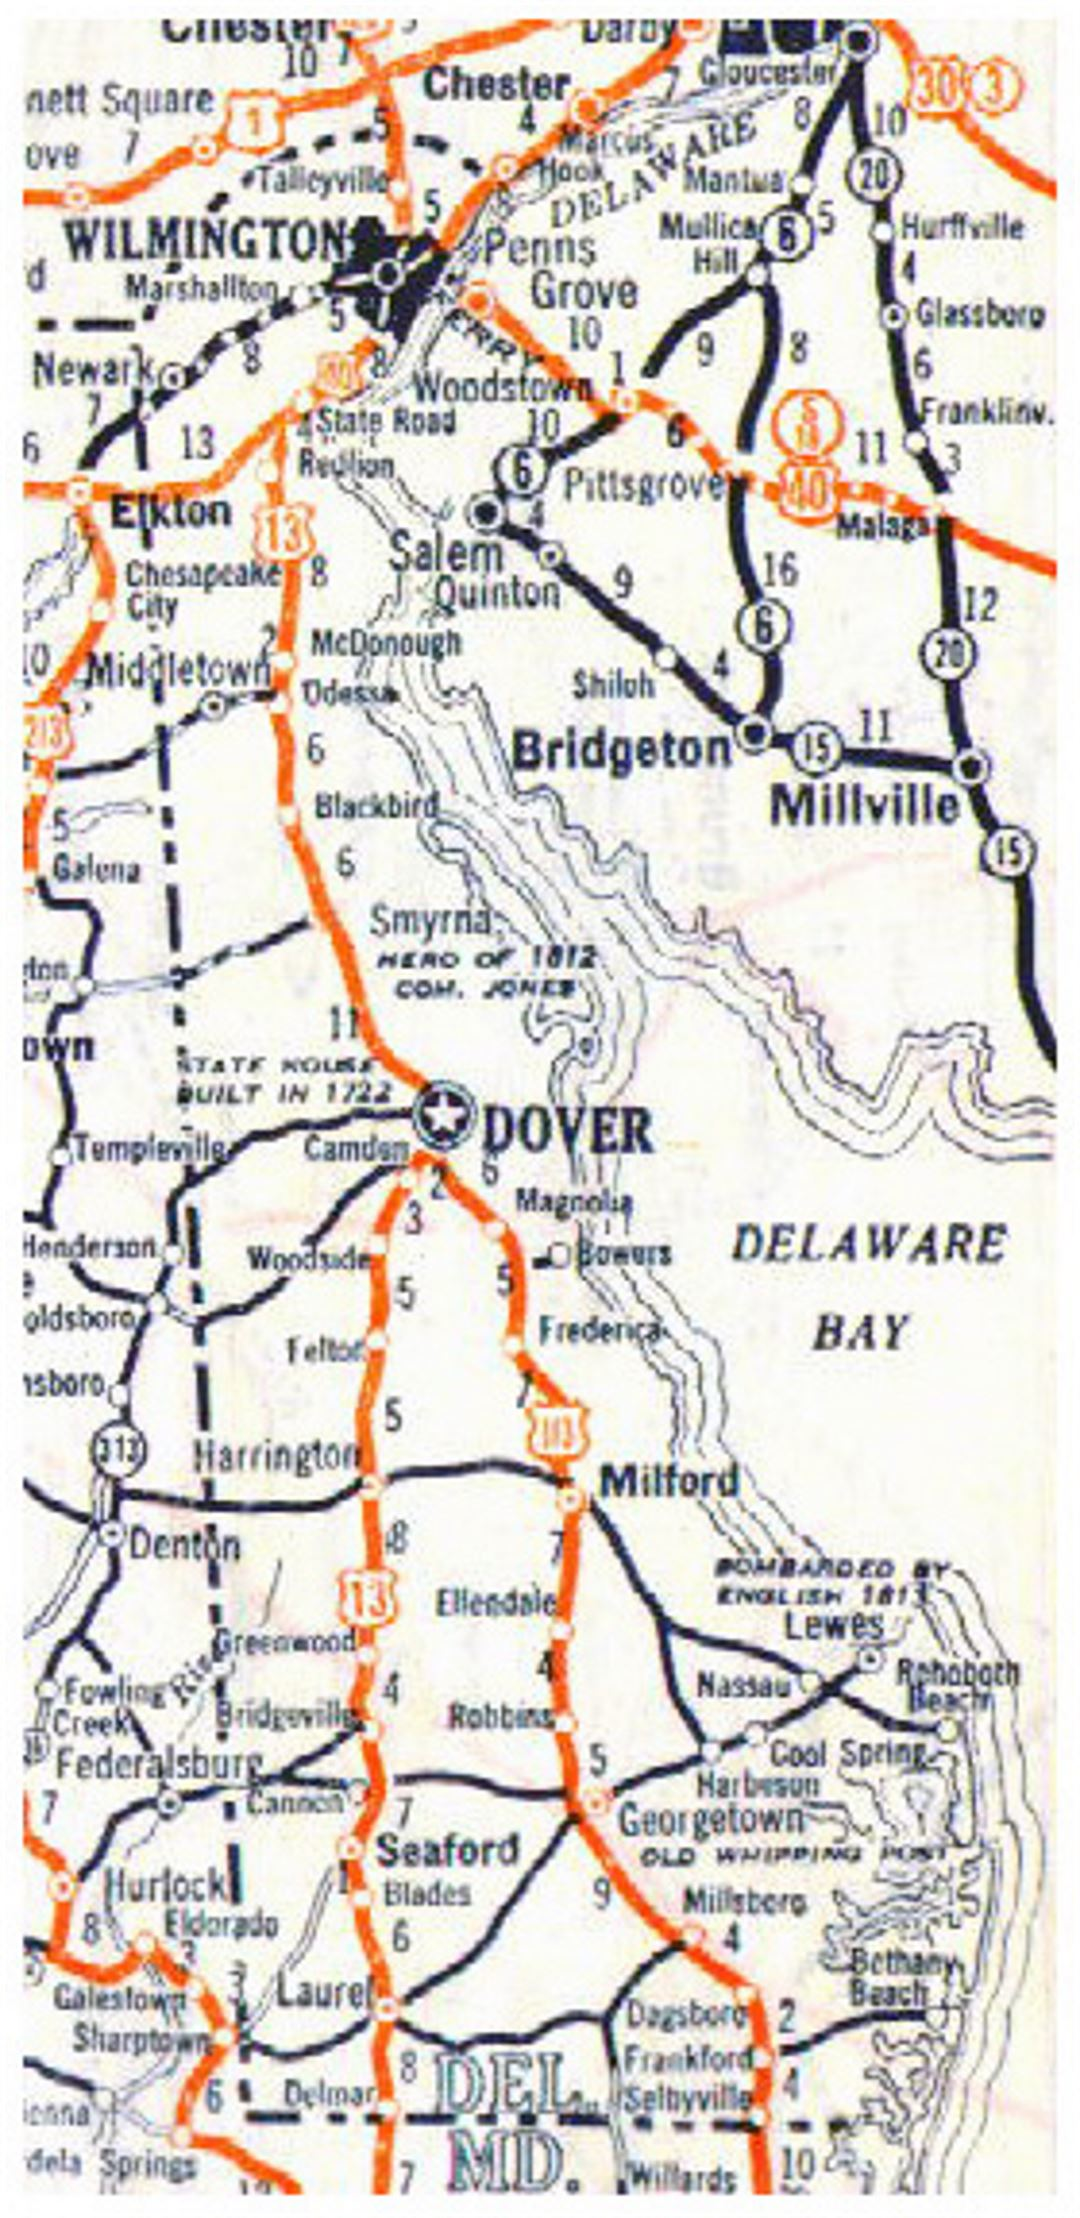 Small roads and highways map of Delaware state - 1928